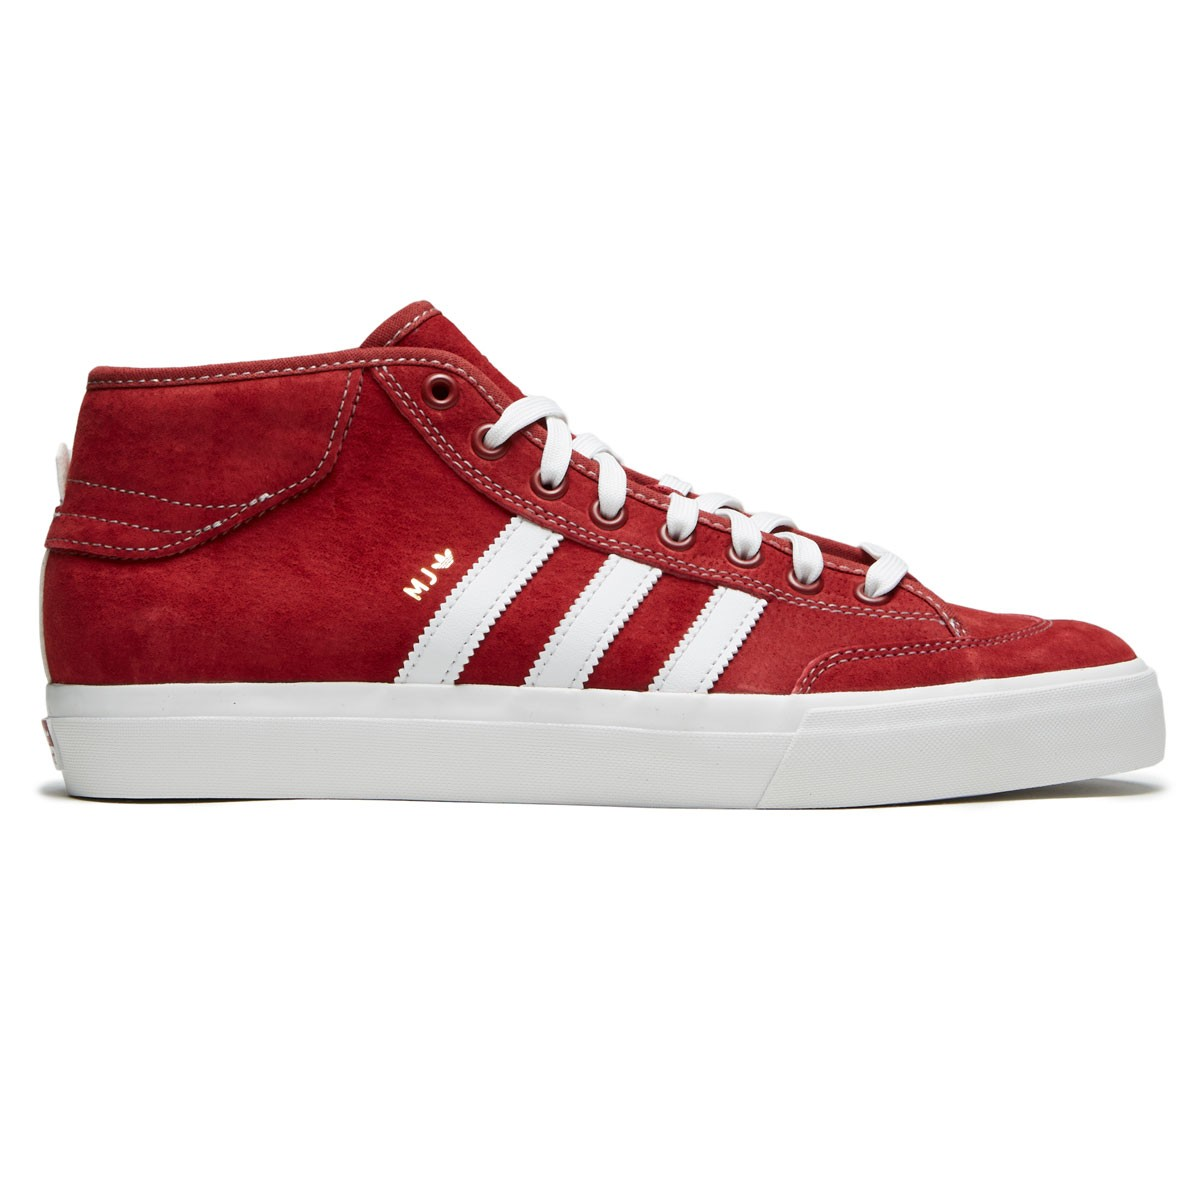 Adidas Matchcourt X MJ Shoes - Mystery Red Crystal White Gold Metallic -  10.0 cf3a267ab